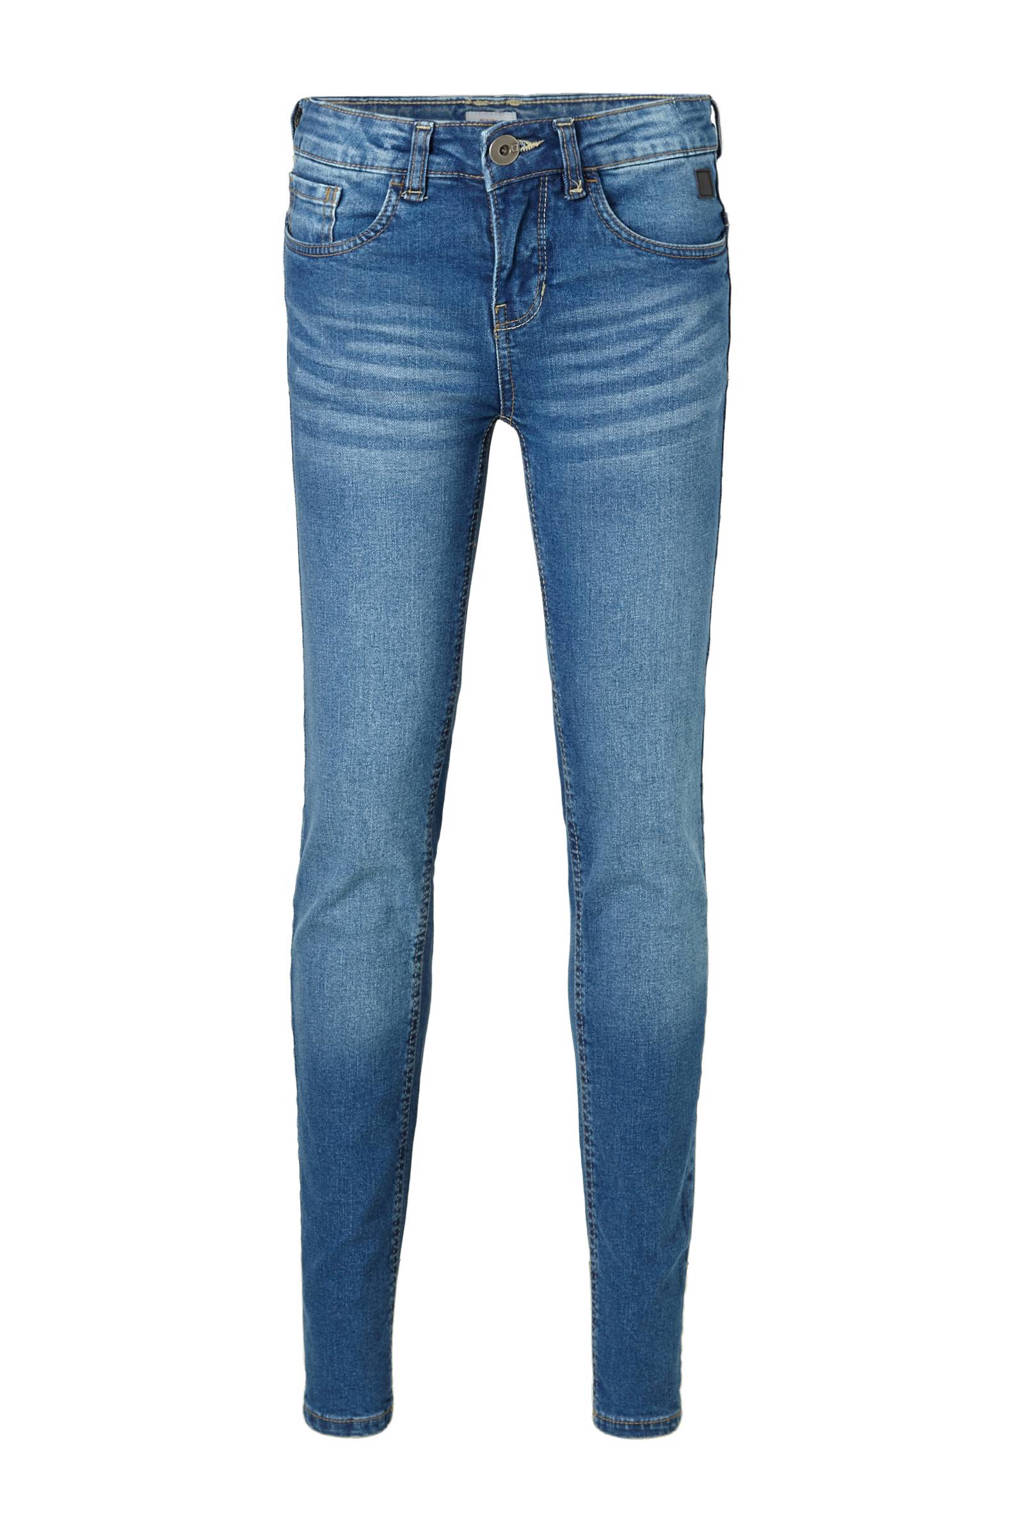 Tumble n dry Finley slim fit jeans, Denim medium stonewash